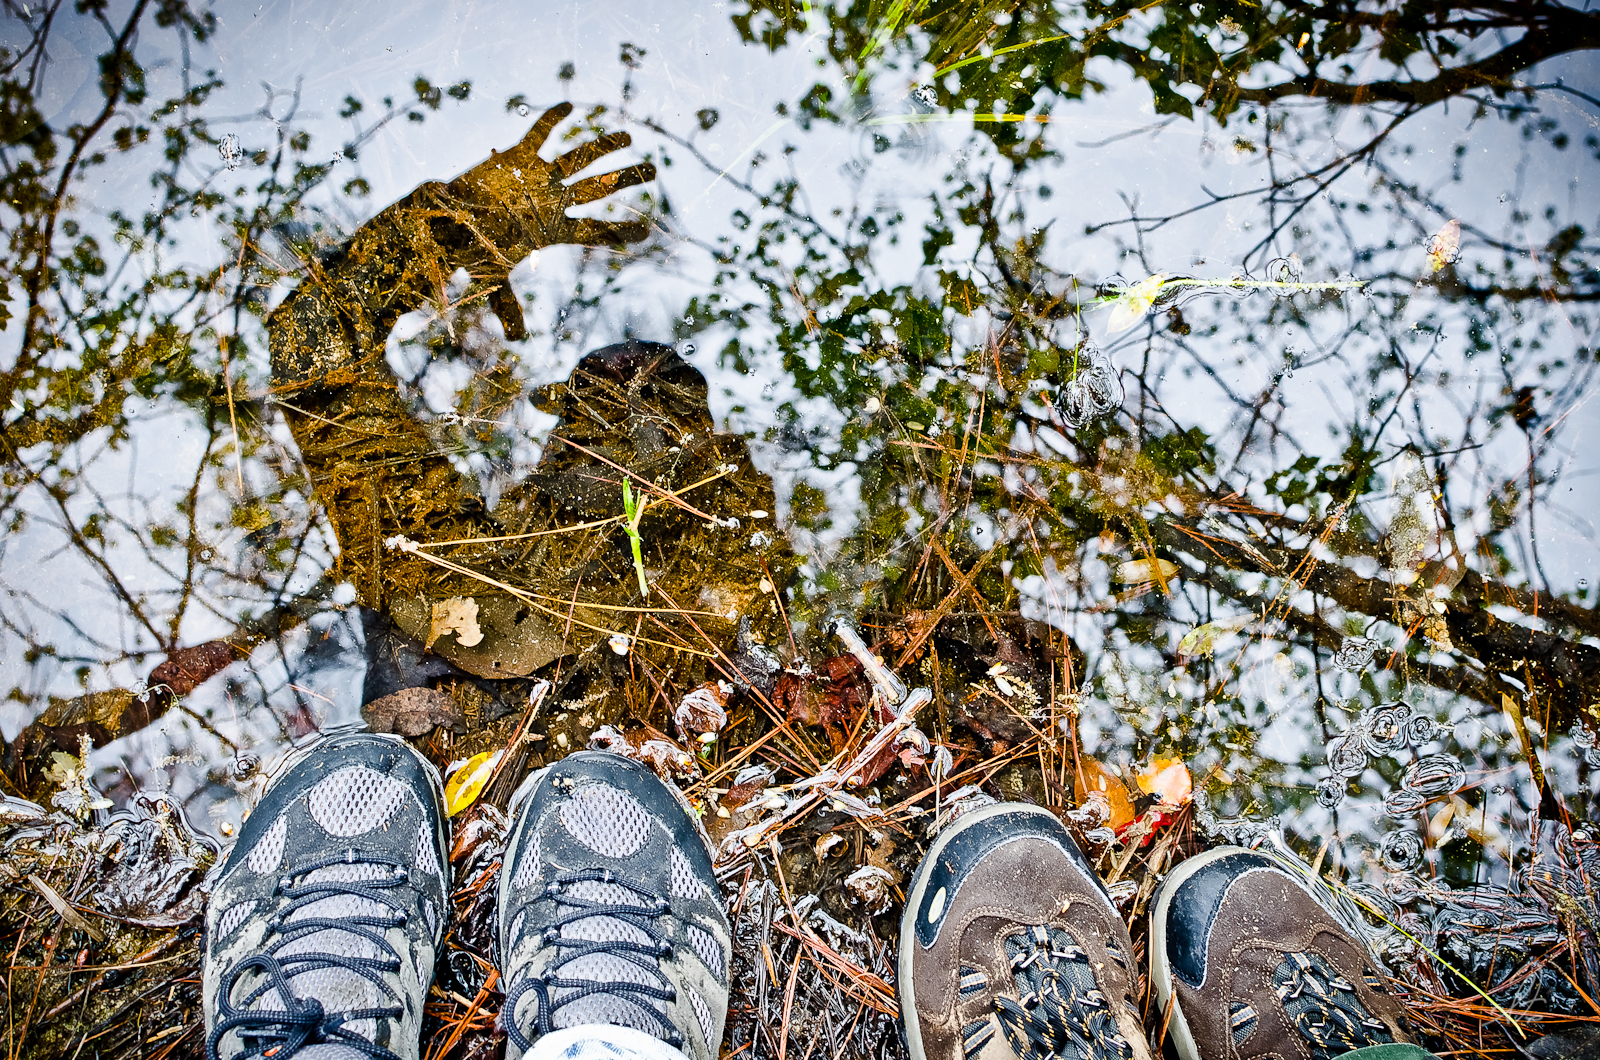 Feet Reflection in the Pond